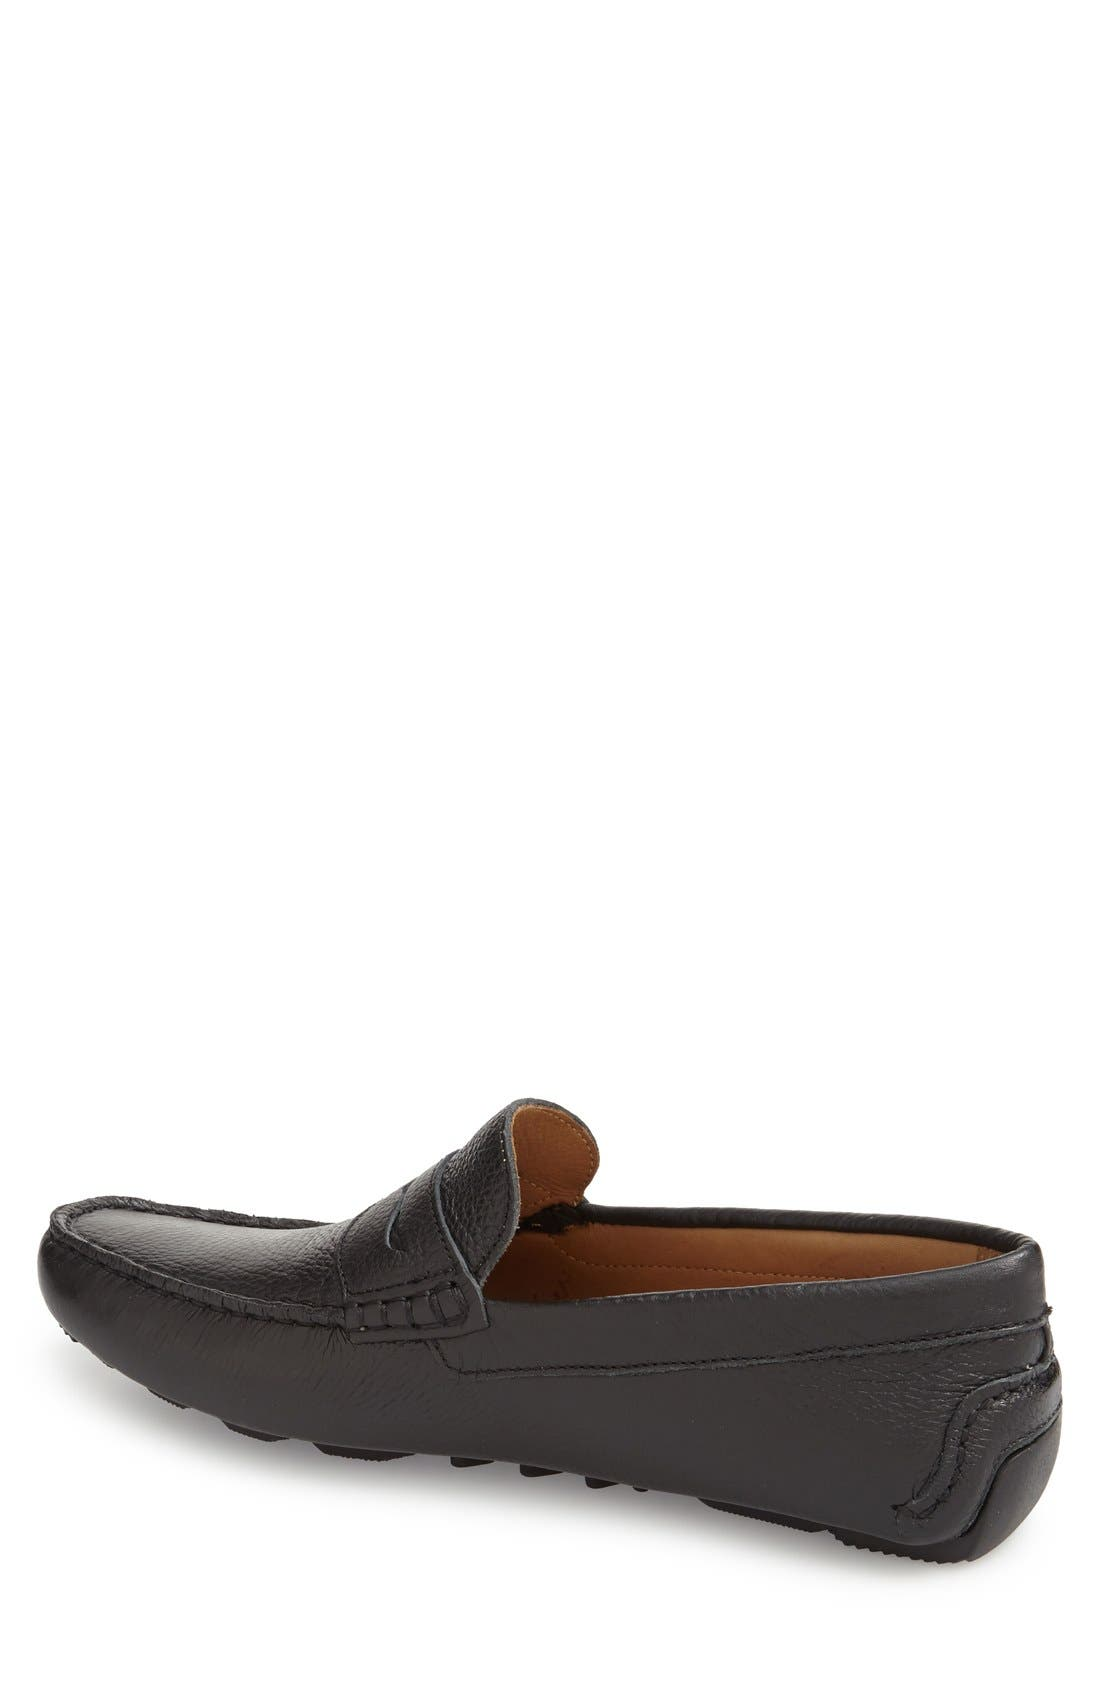 'Bermuda' Penny Loafer,                             Alternate thumbnail 2, color,                             Black Leather